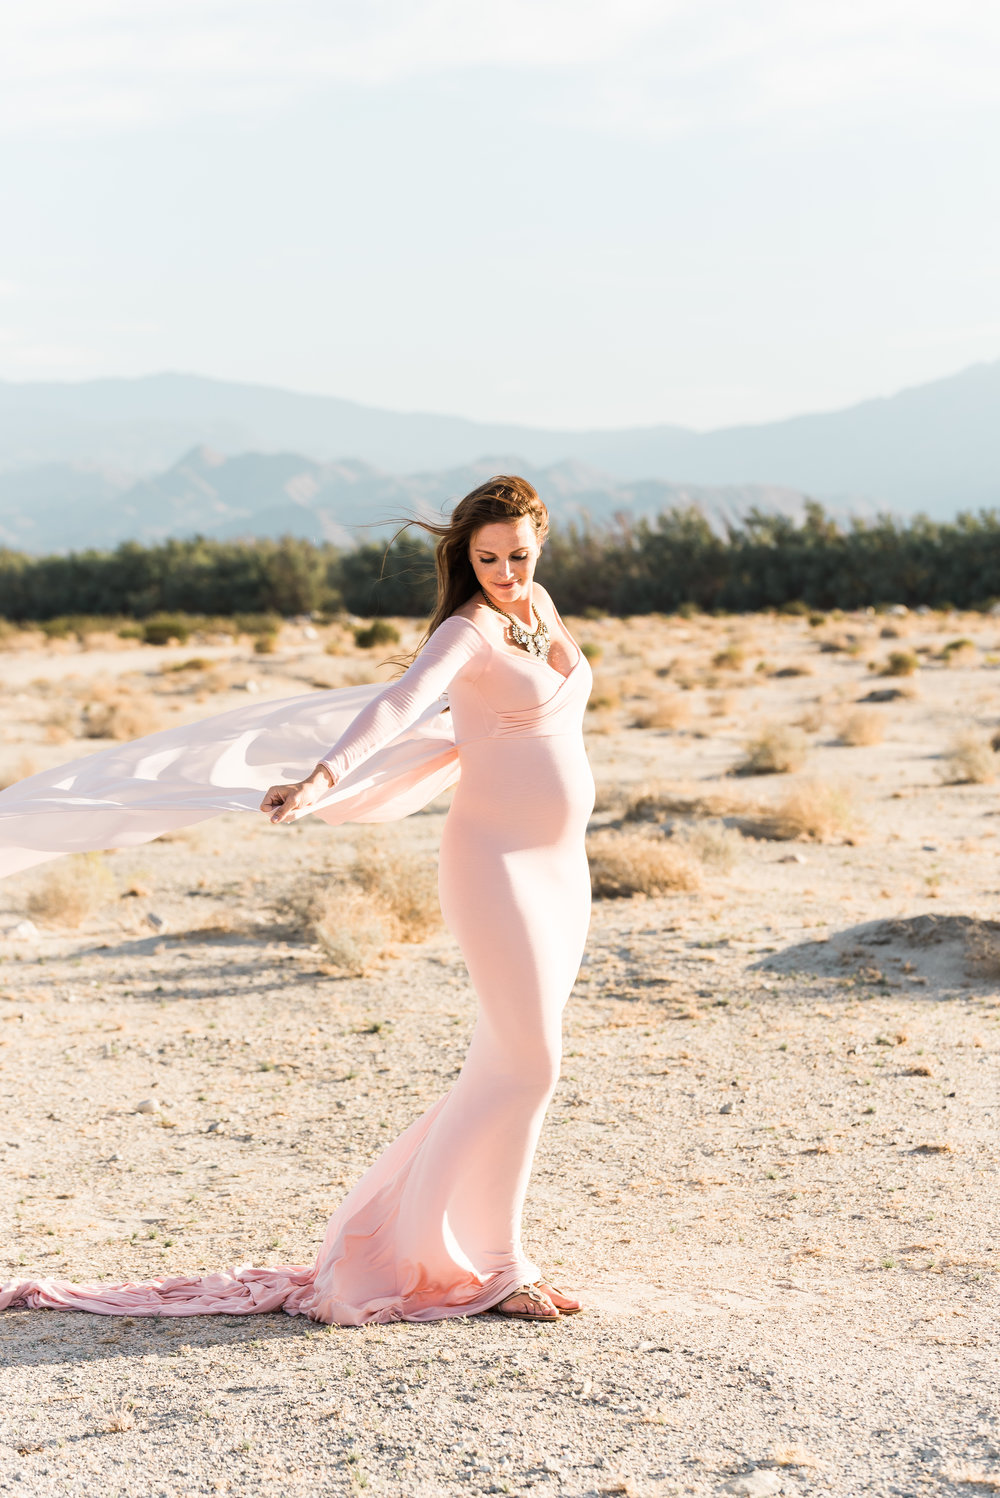 Pastel Coachella Valley Desert Maternity Photos -- Randy + Ashley Studios